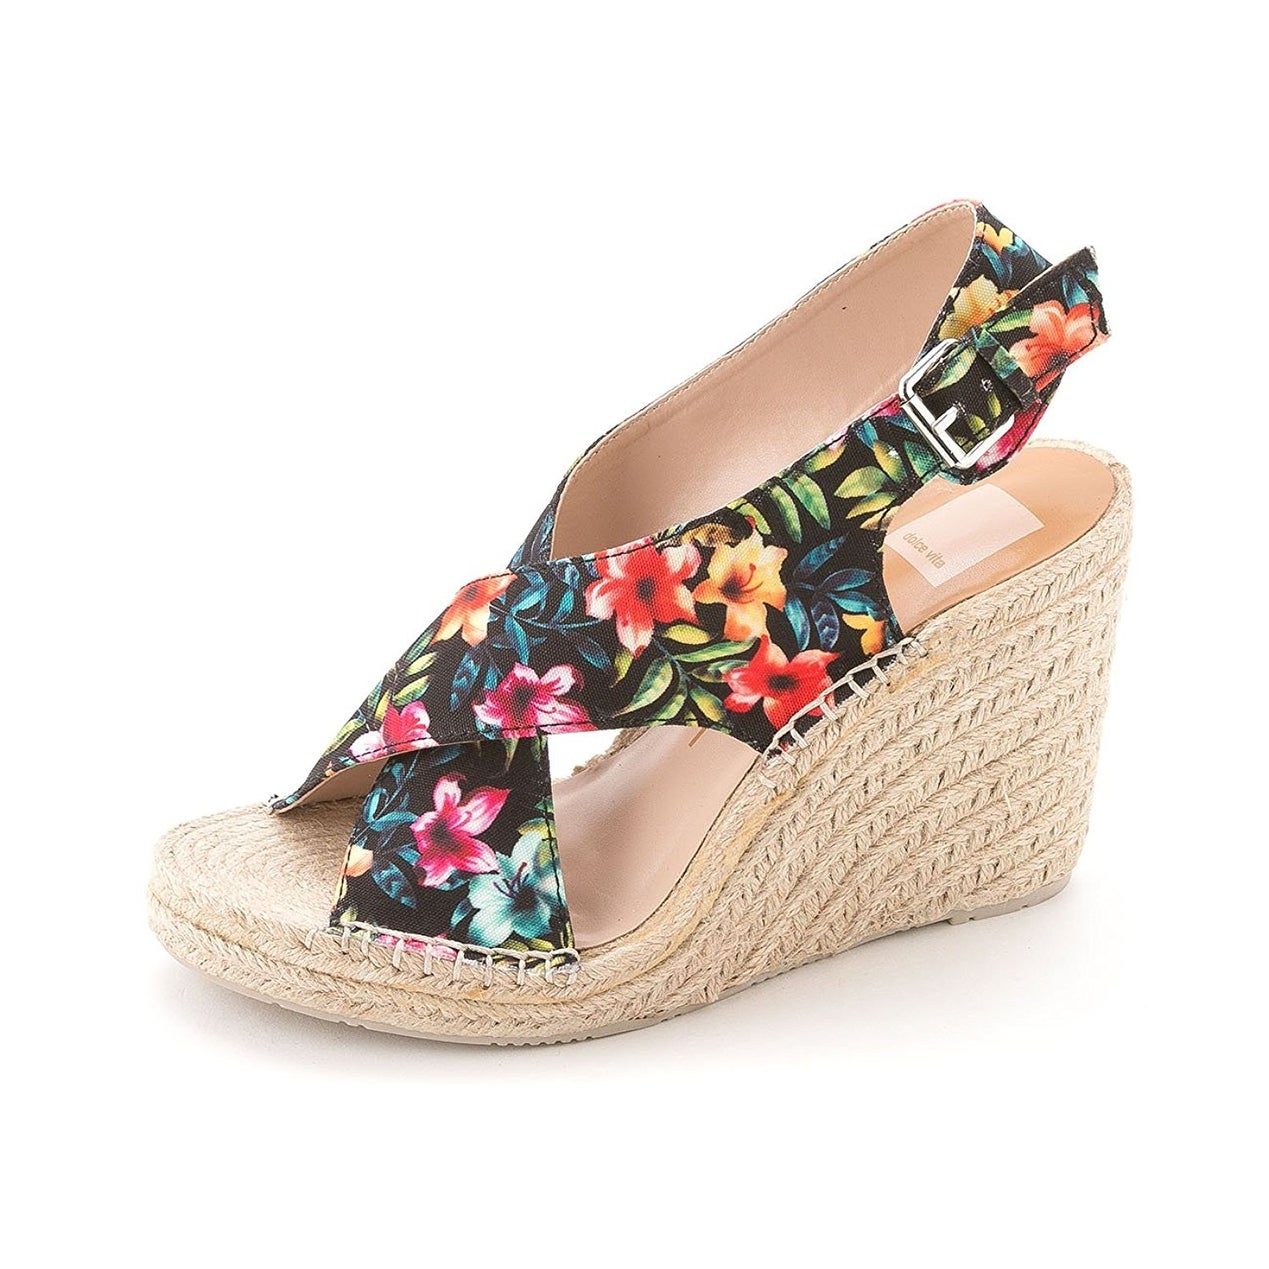 c728abdb0187 Shop Dolce Vita Womens Sovay Fabric Peep Toe Special Occasion Platform  Sandals - Free Shipping On Orders Over  45 - Overstock.com - 14527769